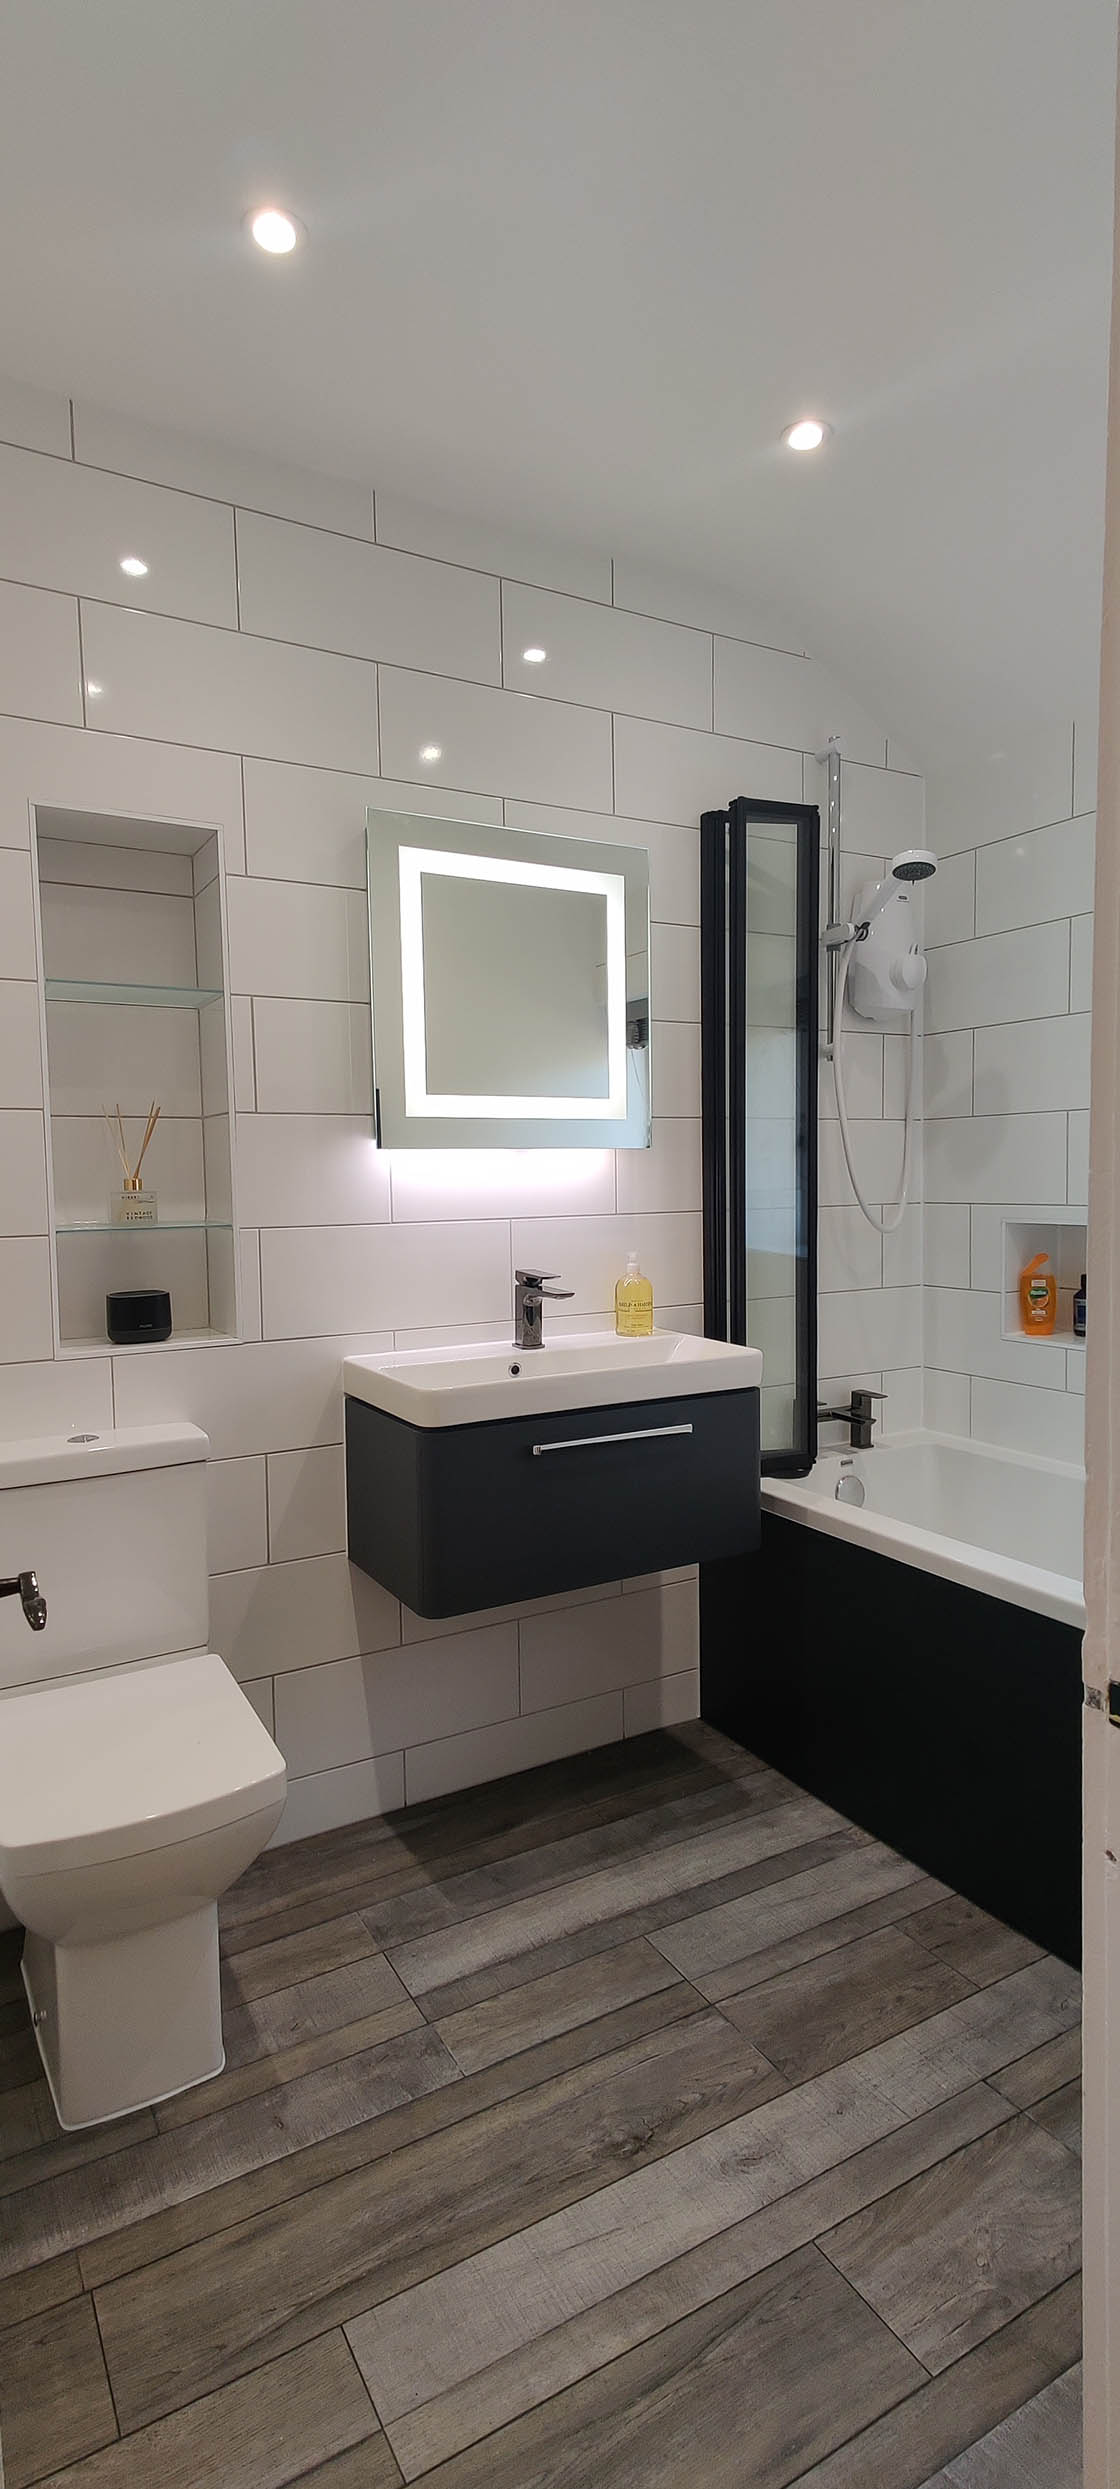 Horley Bathroom Transformation Completition Picture (2)